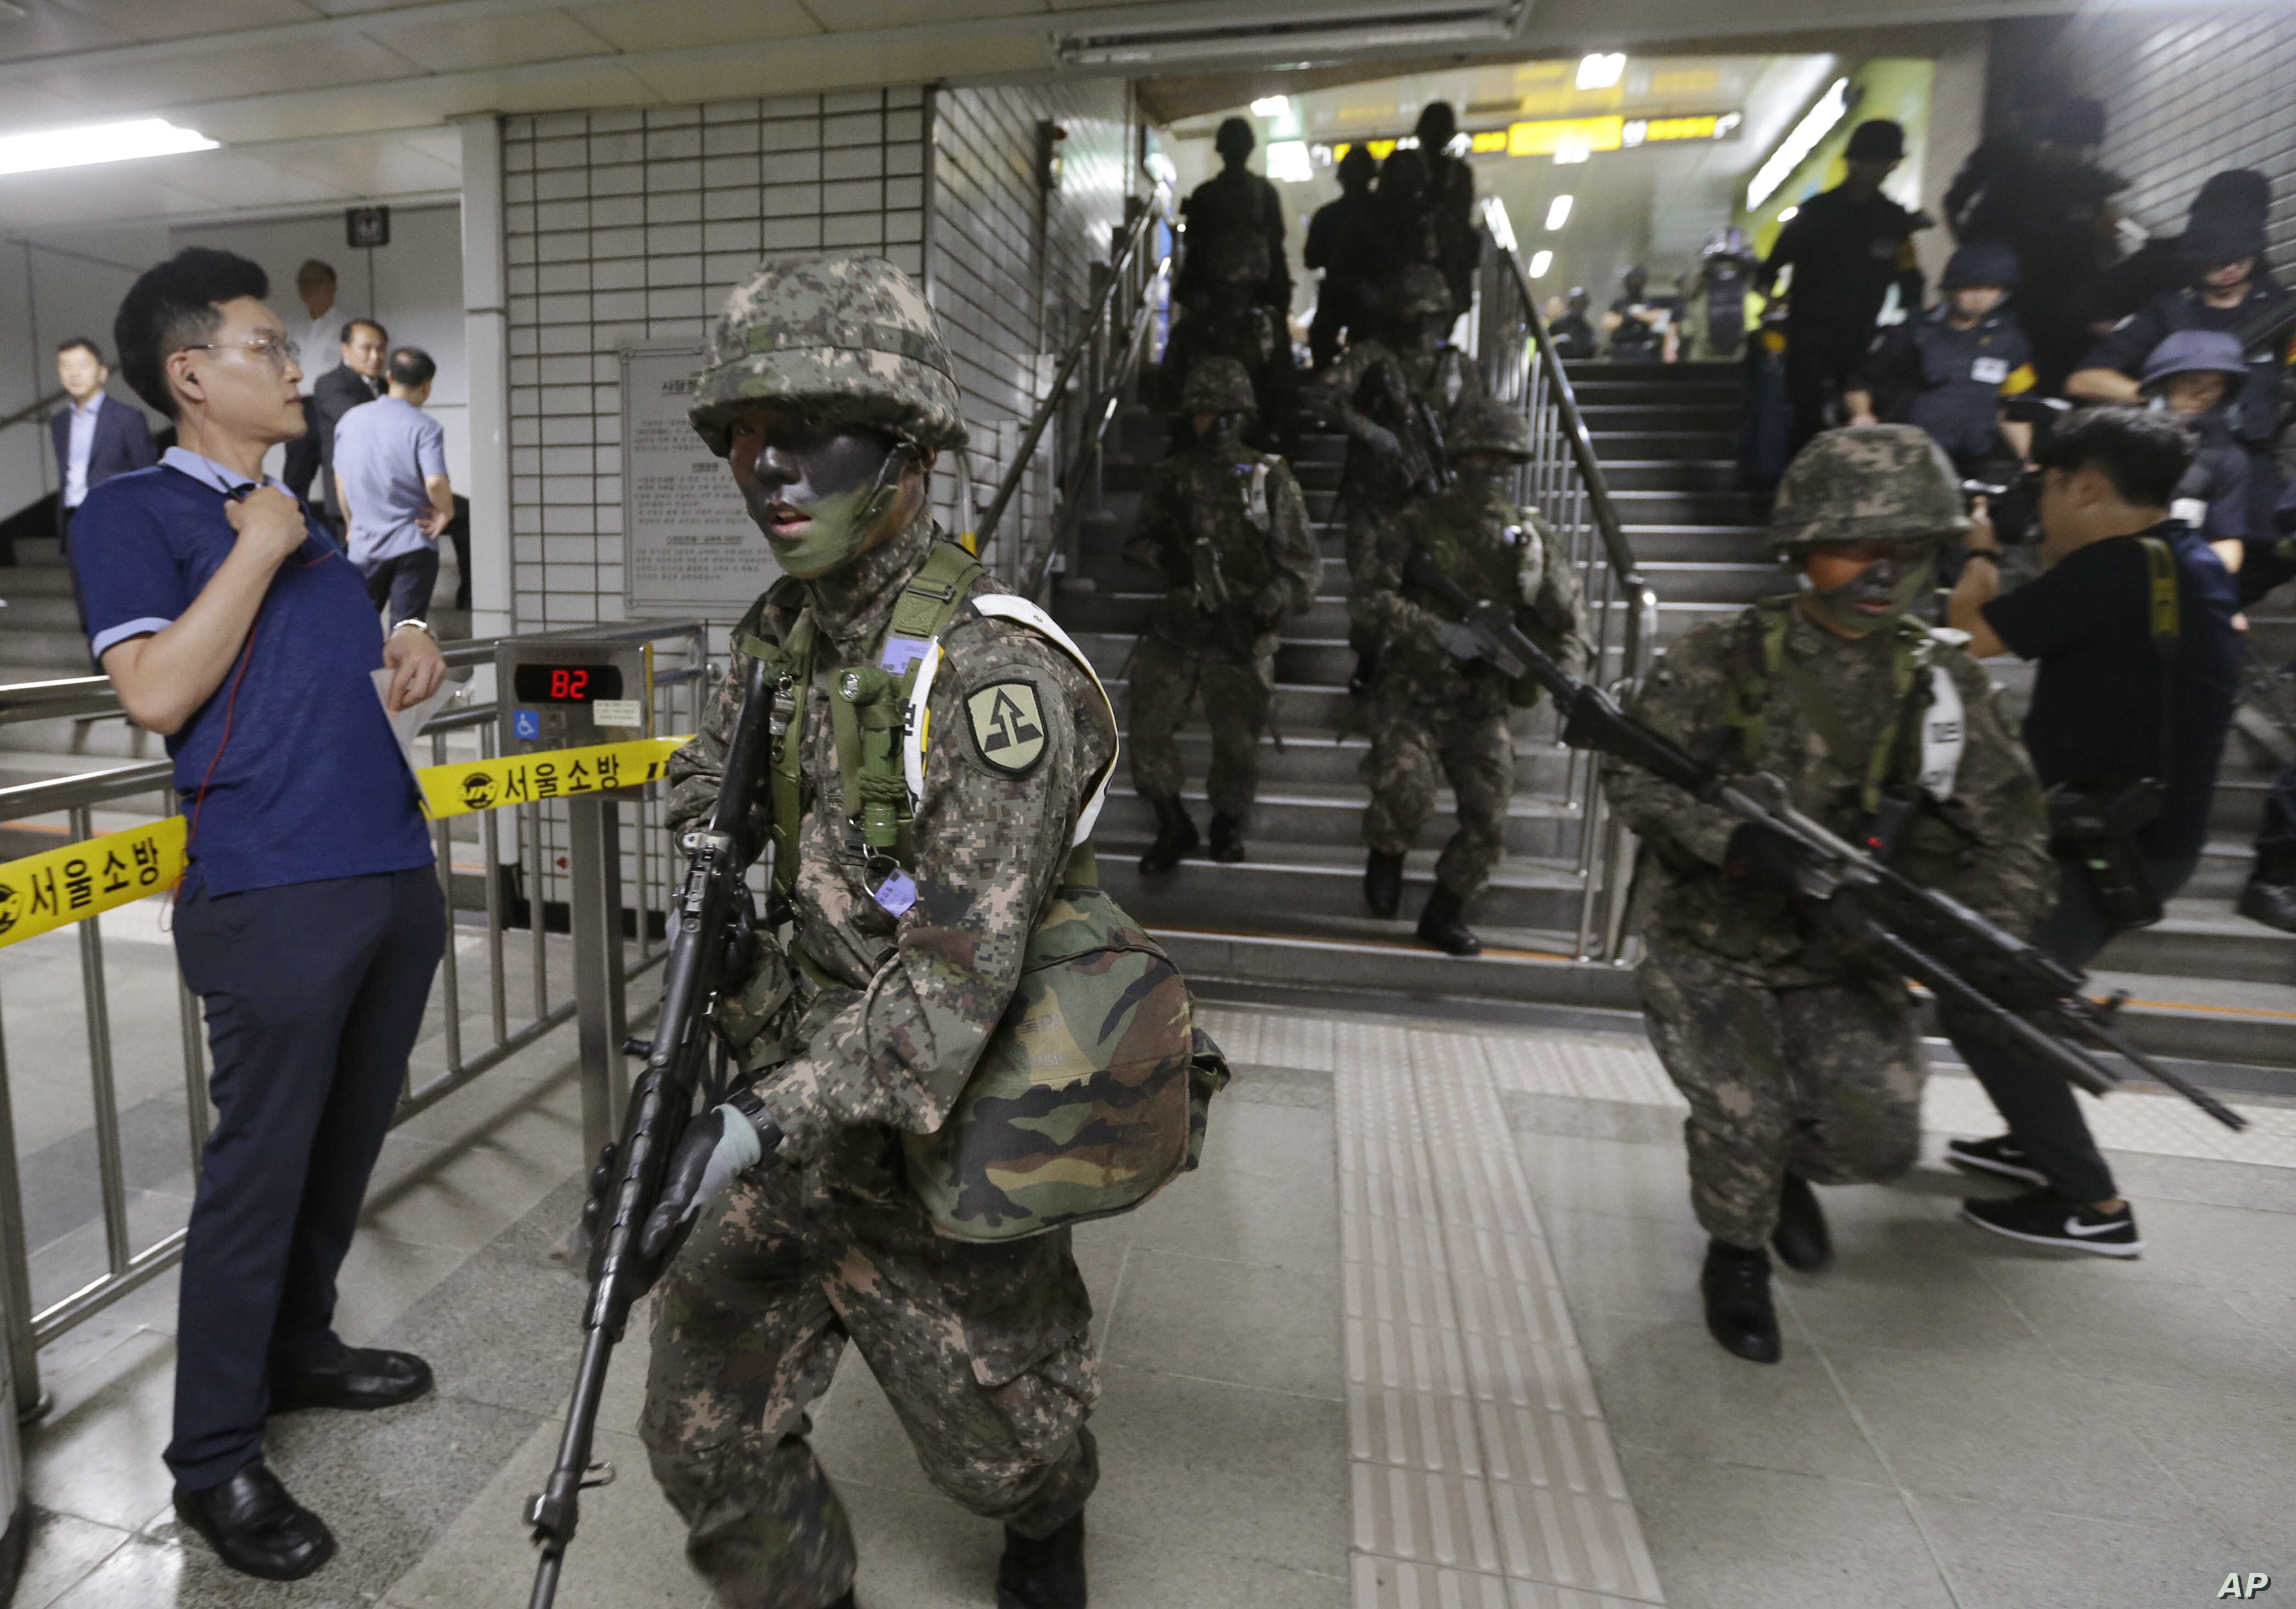 South Korean army soldiers conduct an anti-terror drill as part of Freedom Guardian exercise with the United States inside a subway station in Seoul, South Korea,  Aug. 22, 2017.